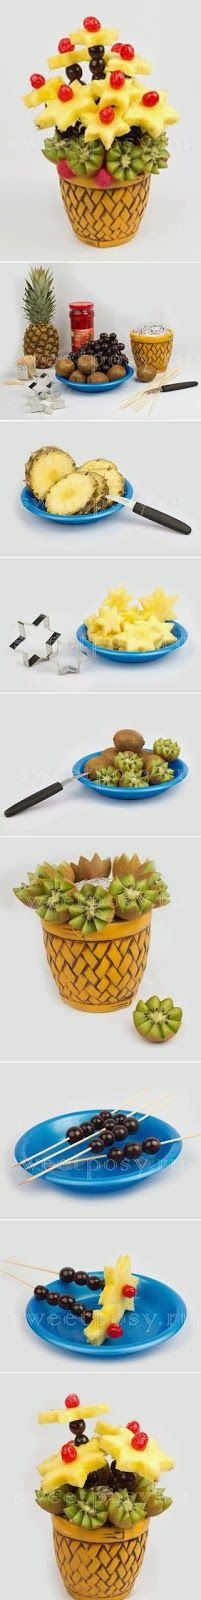 DIY Fruity Bouquet fruit basket bouquet fruity diy crafts easy crafts diy ideas diy crafts do it yourself crafty easy diy diy food diy food art diy easy diy craft ideas diy tutorials Fruit Party, Snacks Für Party, Party Favors, Fruits Decoration, Deco Fruit, Deco Buffet, Pineapple Flowers, Fruit Flowers, Fruit And Vegetable Carving